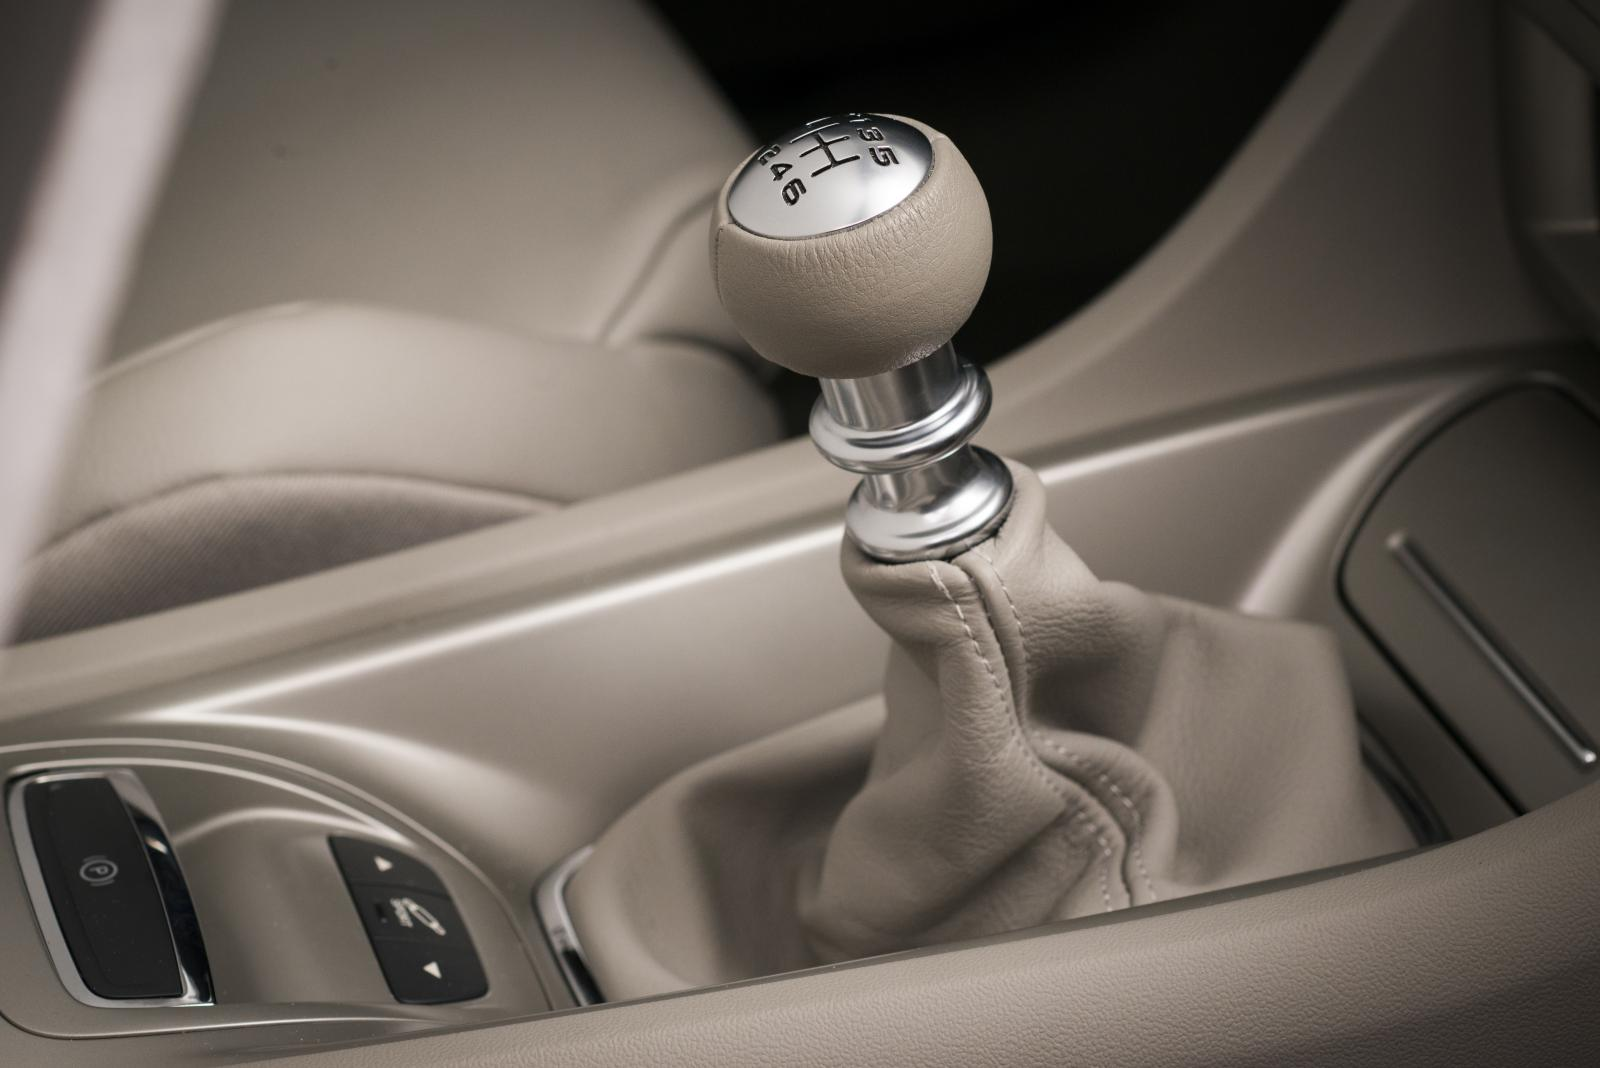 C5 gear lever